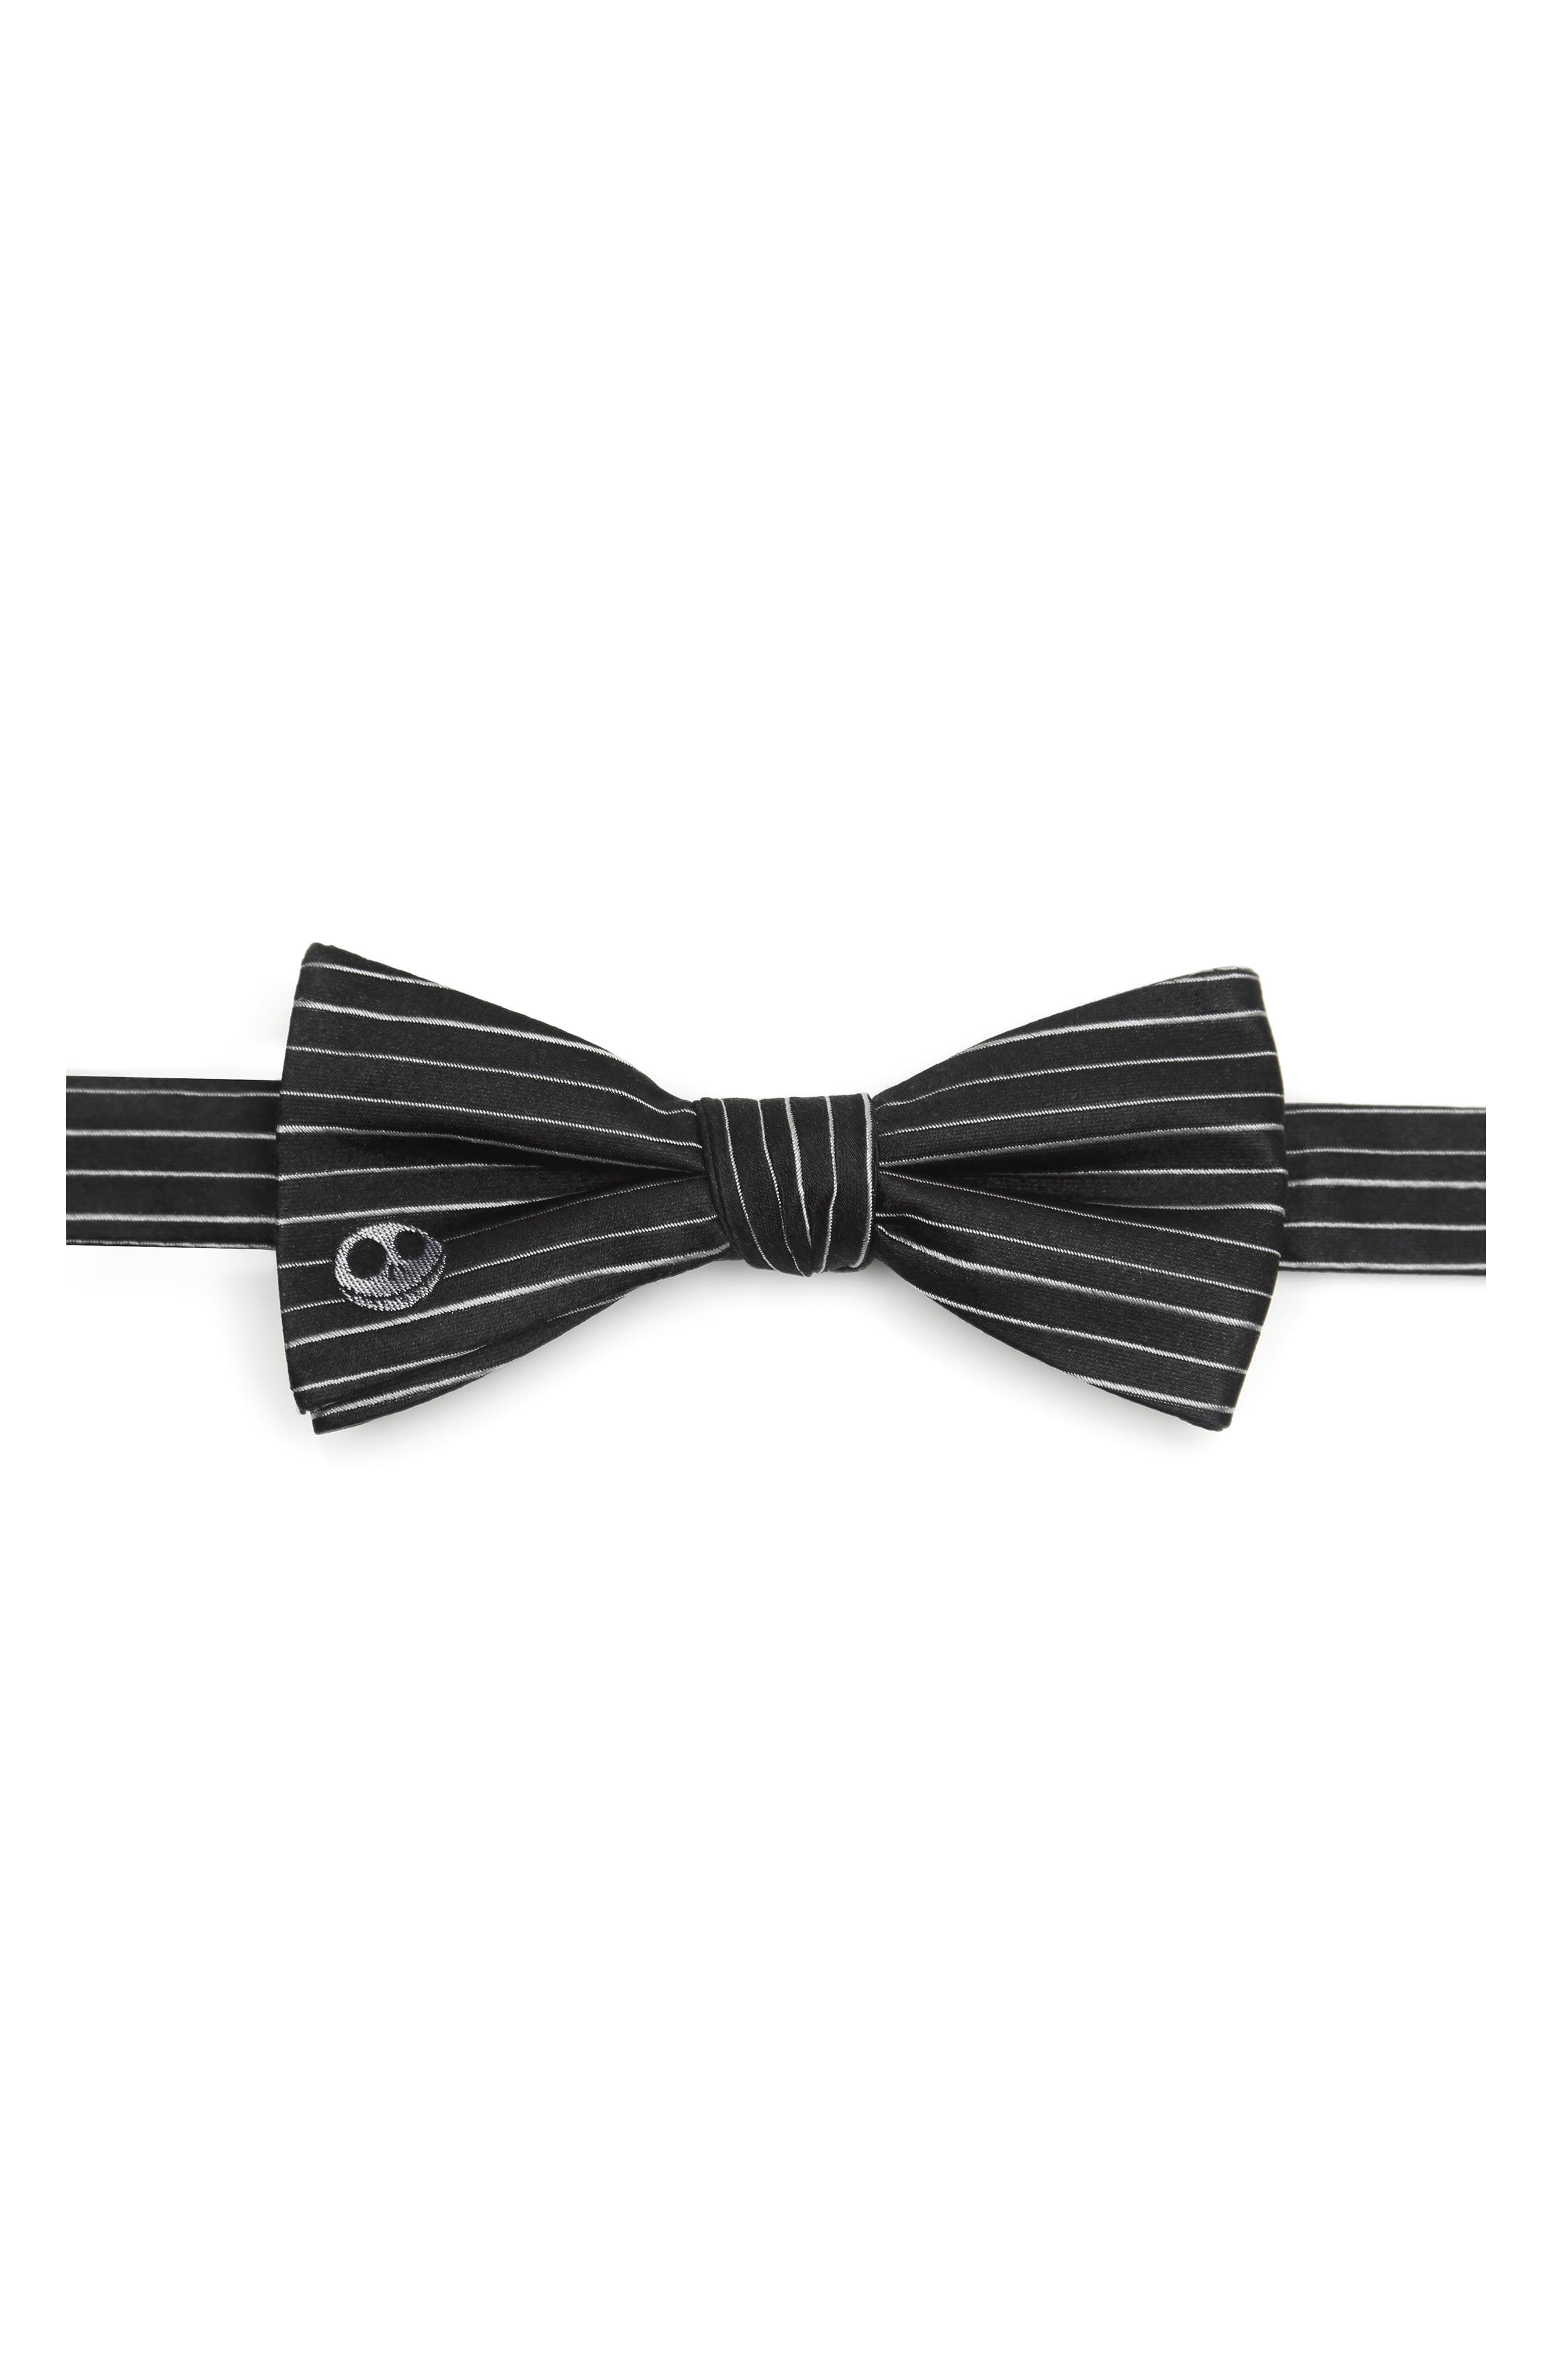 Jaunty white stripes and grinning Jack Skellington embroidery give this dapper silk bow tie a playful \\\'Nightmare Before Christmas\\\' twist. Style Name: Cufflinks, Inc. Nightmare Before Christmas Silk Bow Tie. Style Number: 5756912. Available in stores.